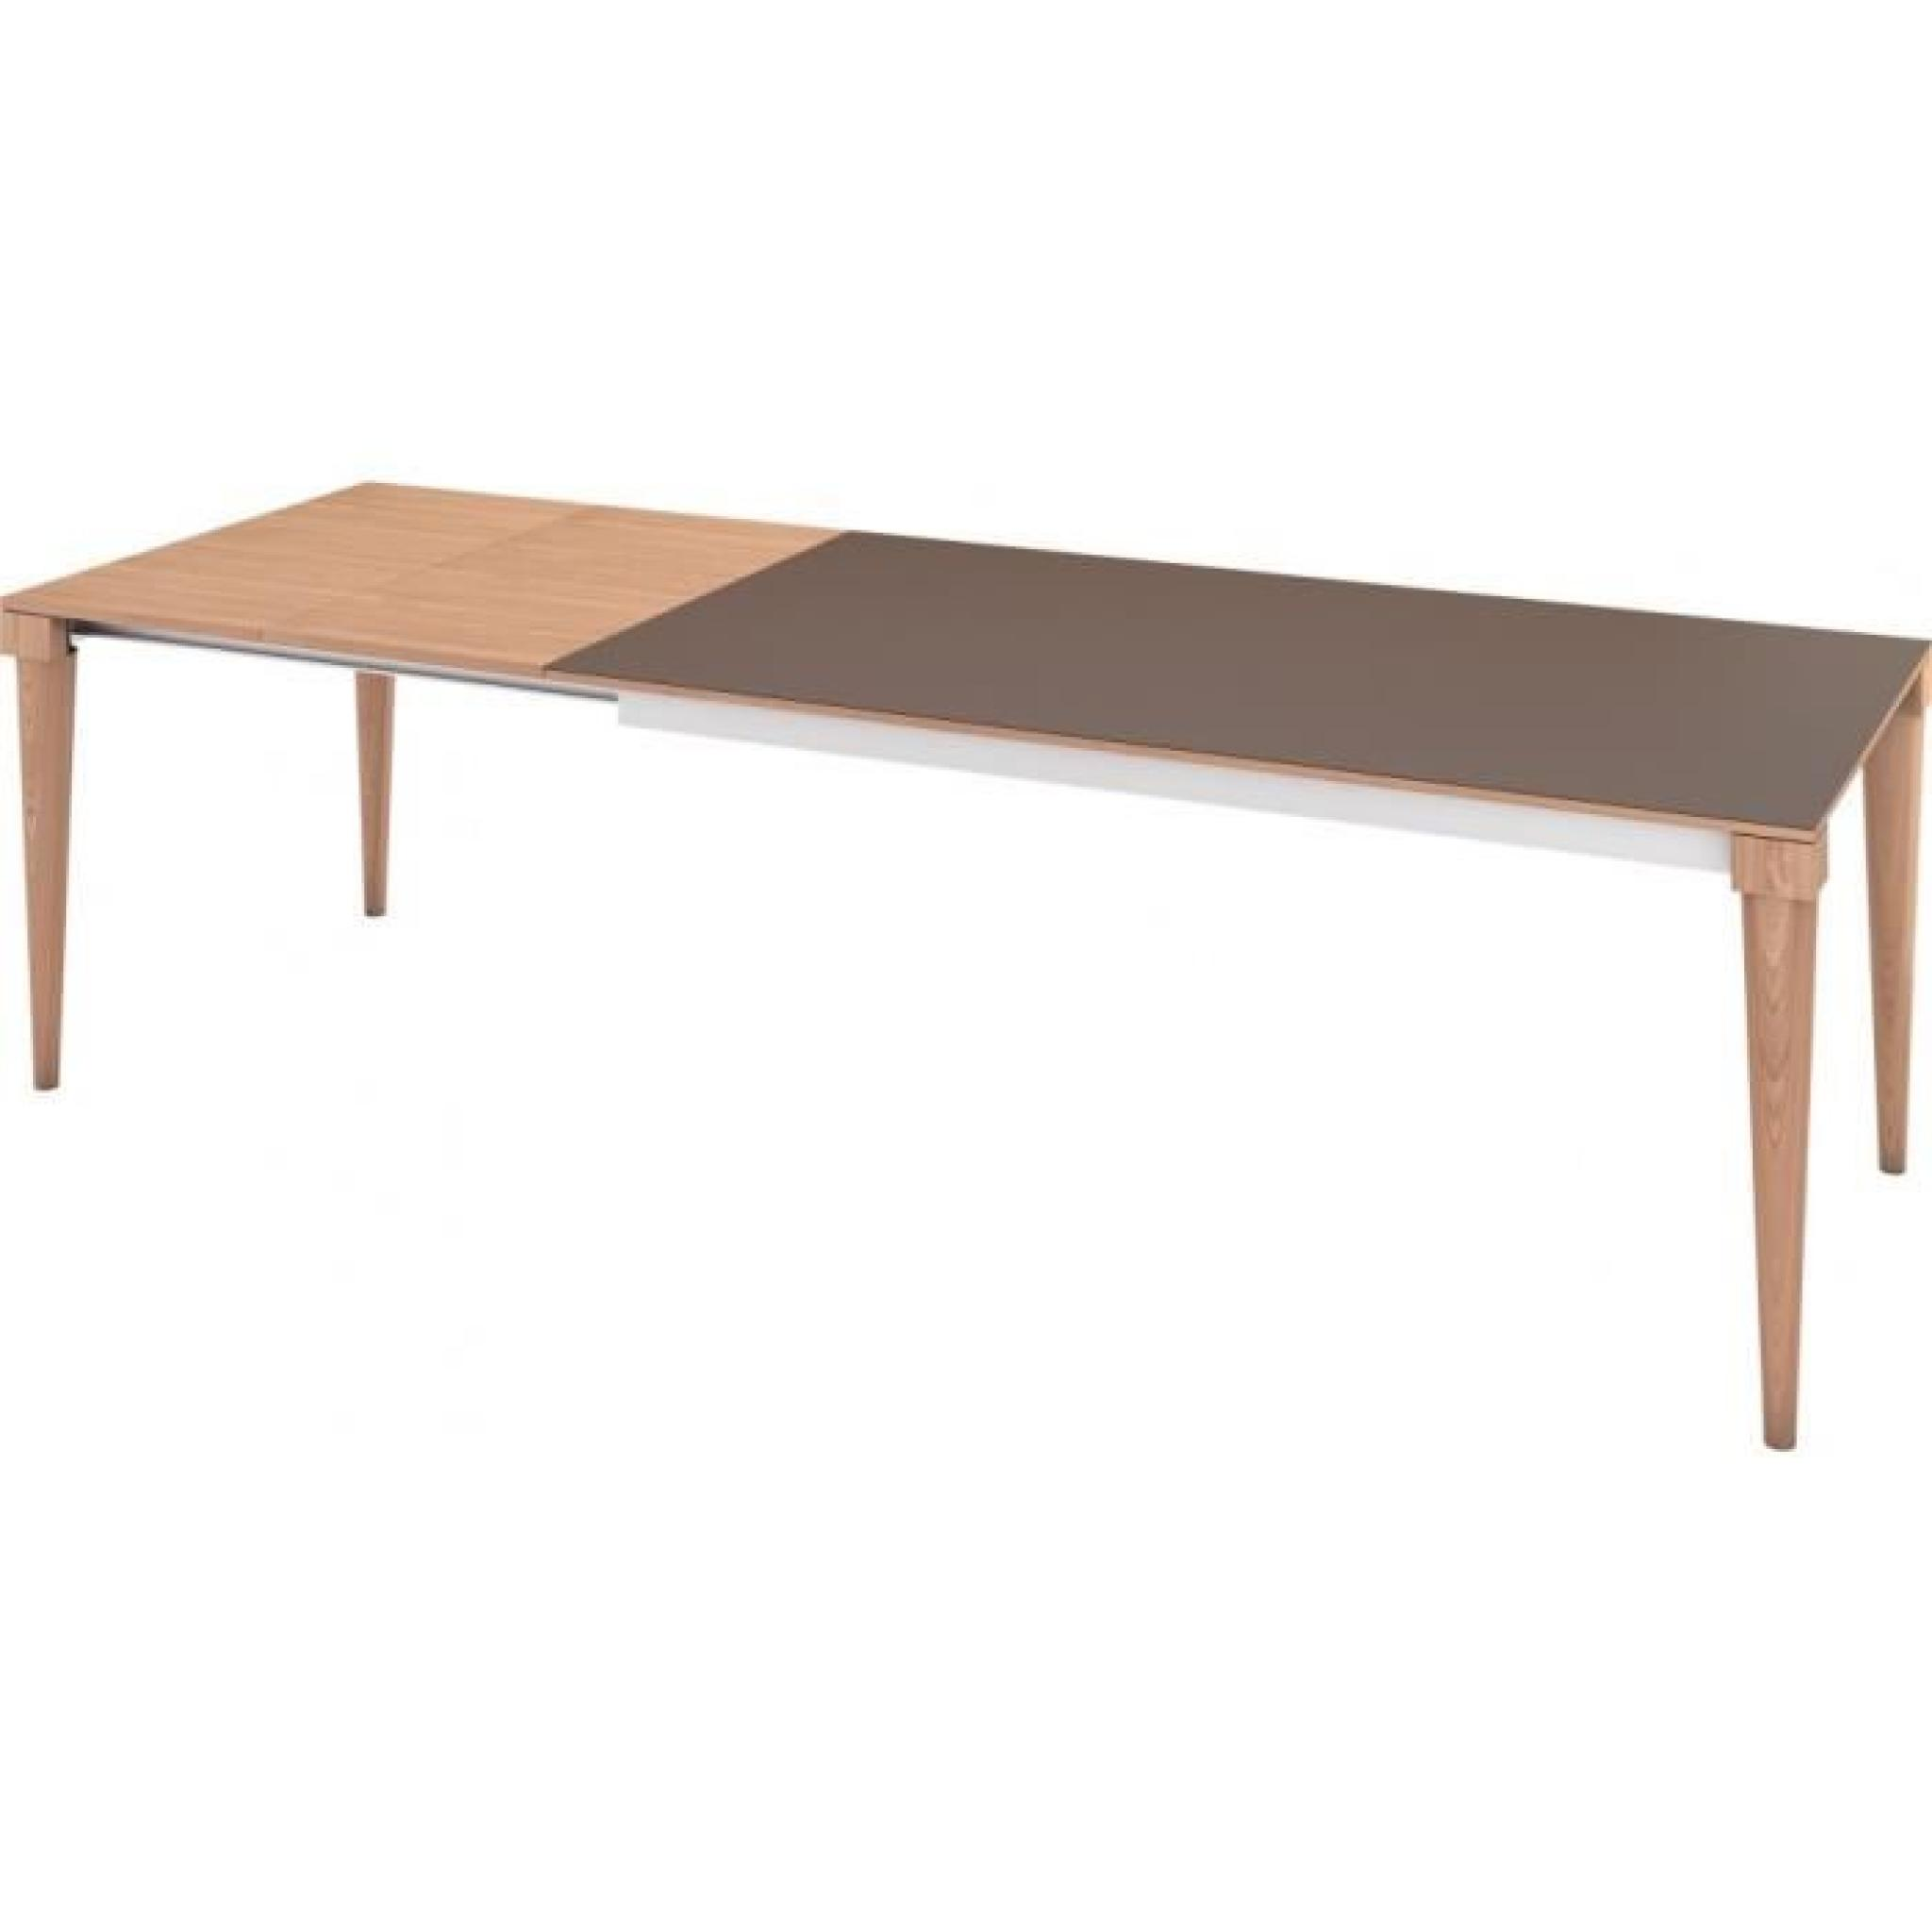 Table de repas scandinave ch ne naturel plateau c ramique for Salle a manger table ceramique